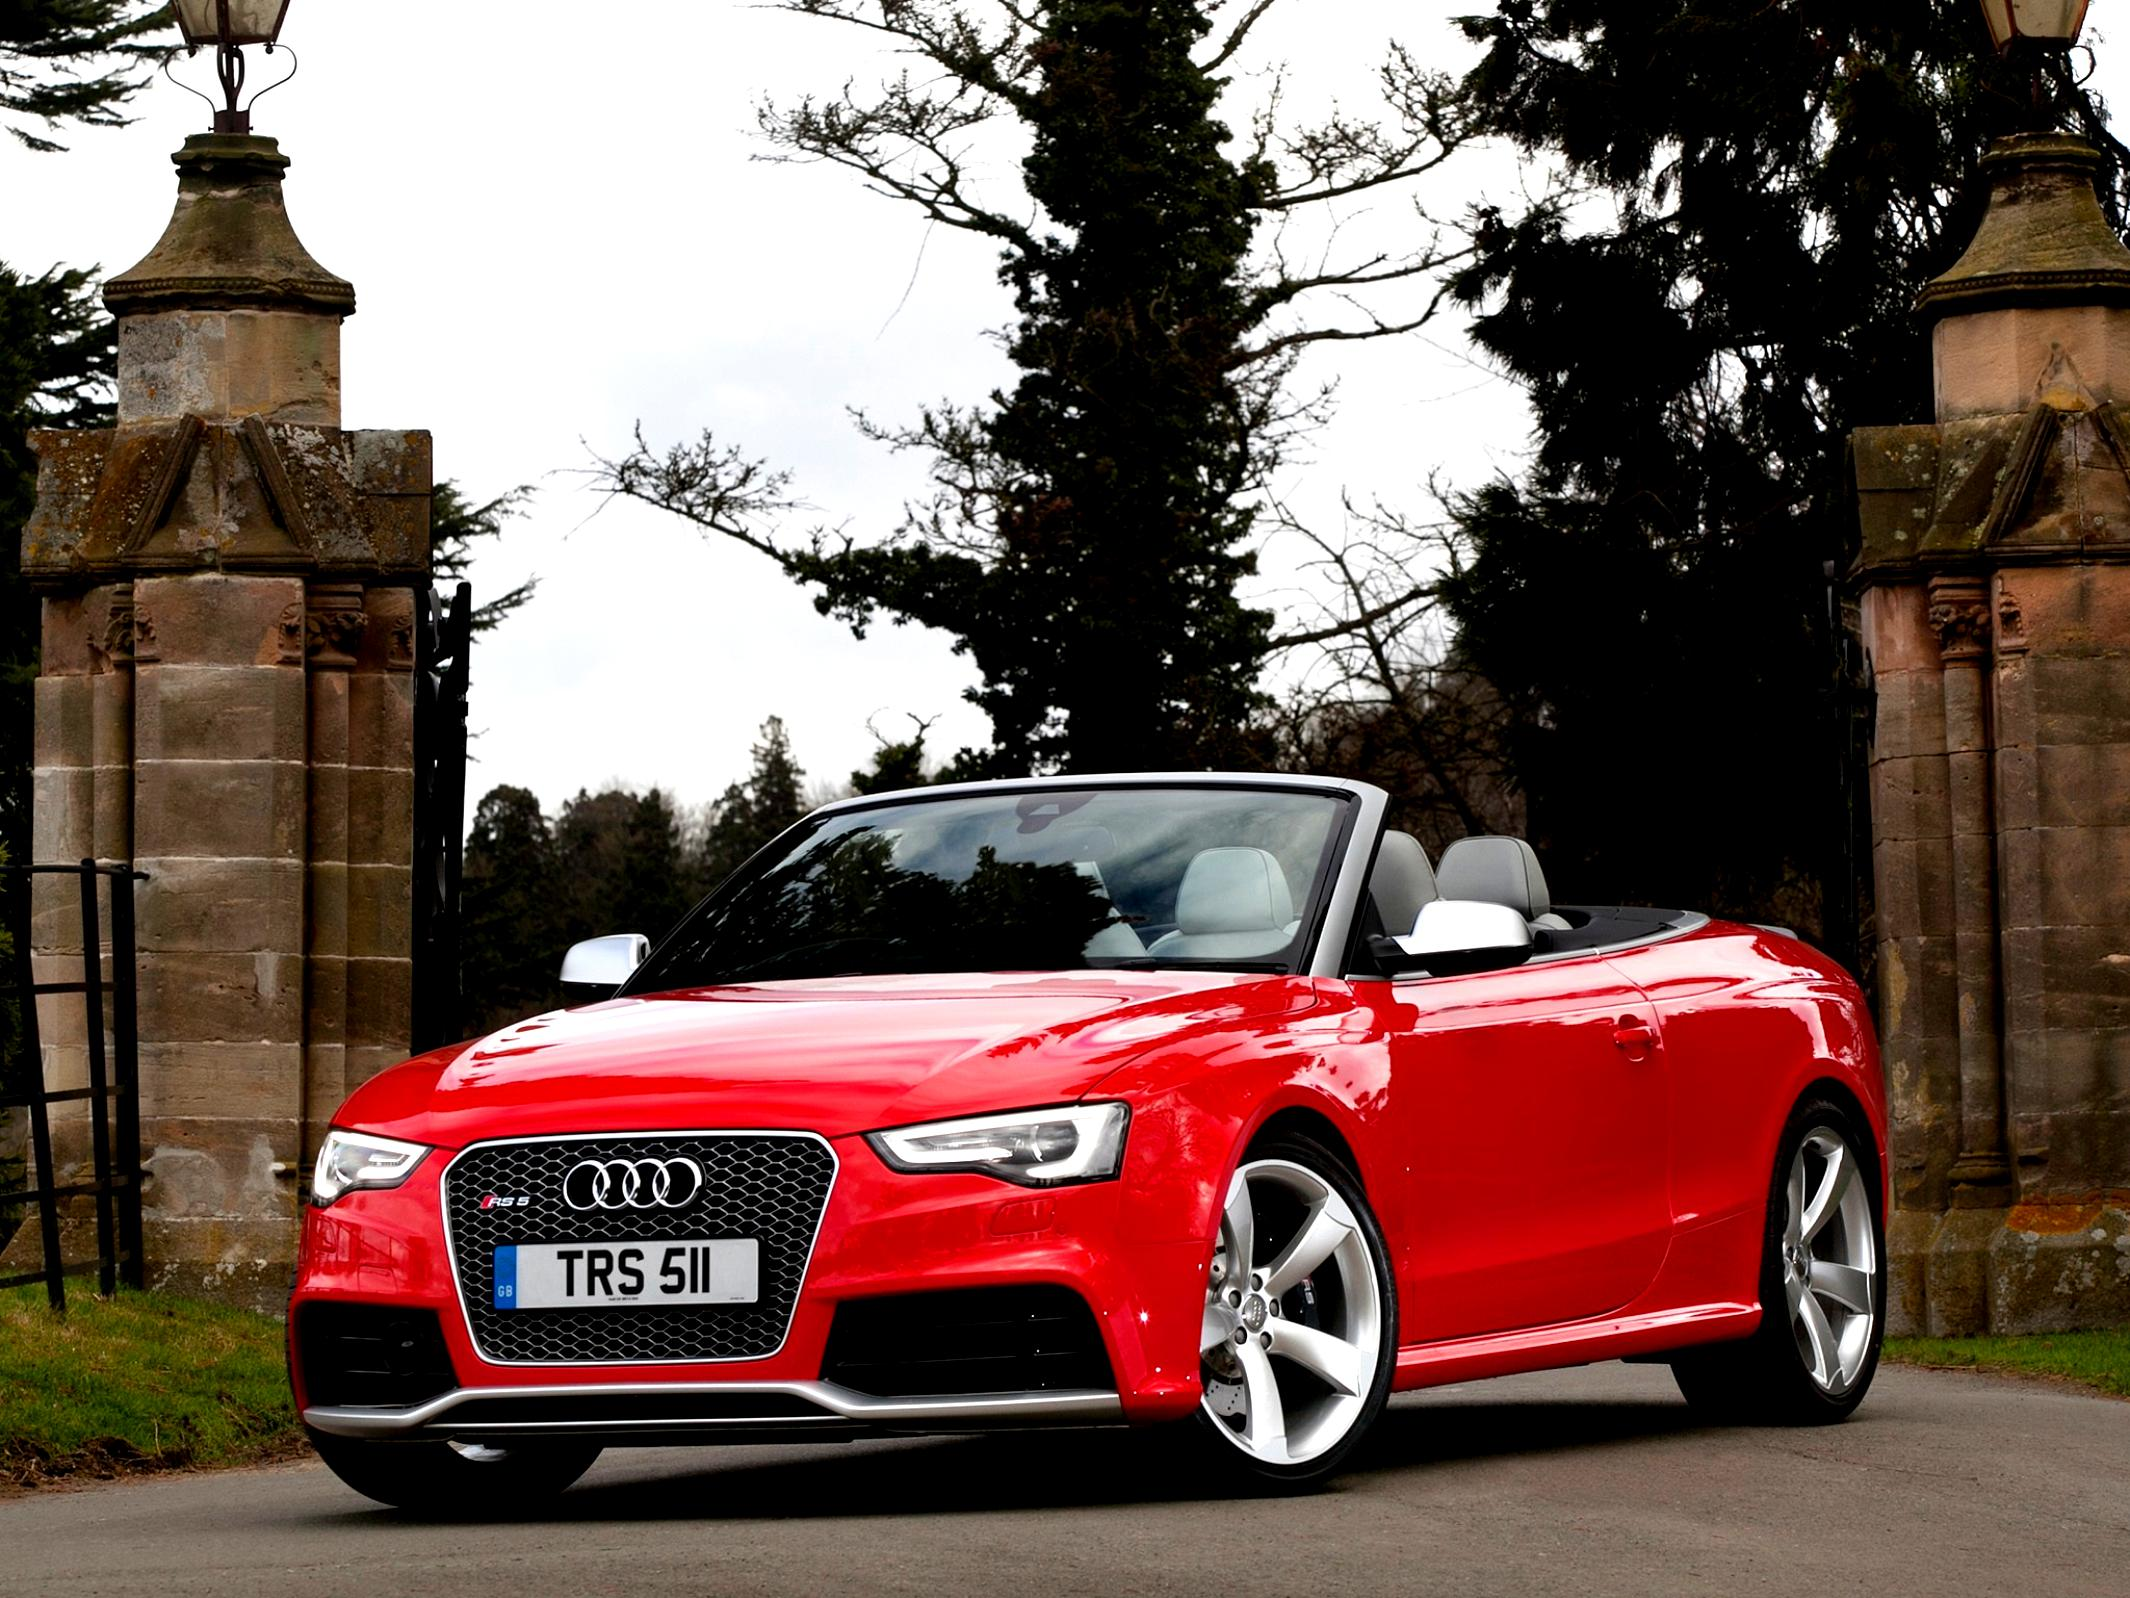 Audi RS5 Cabriolet 2013 #67